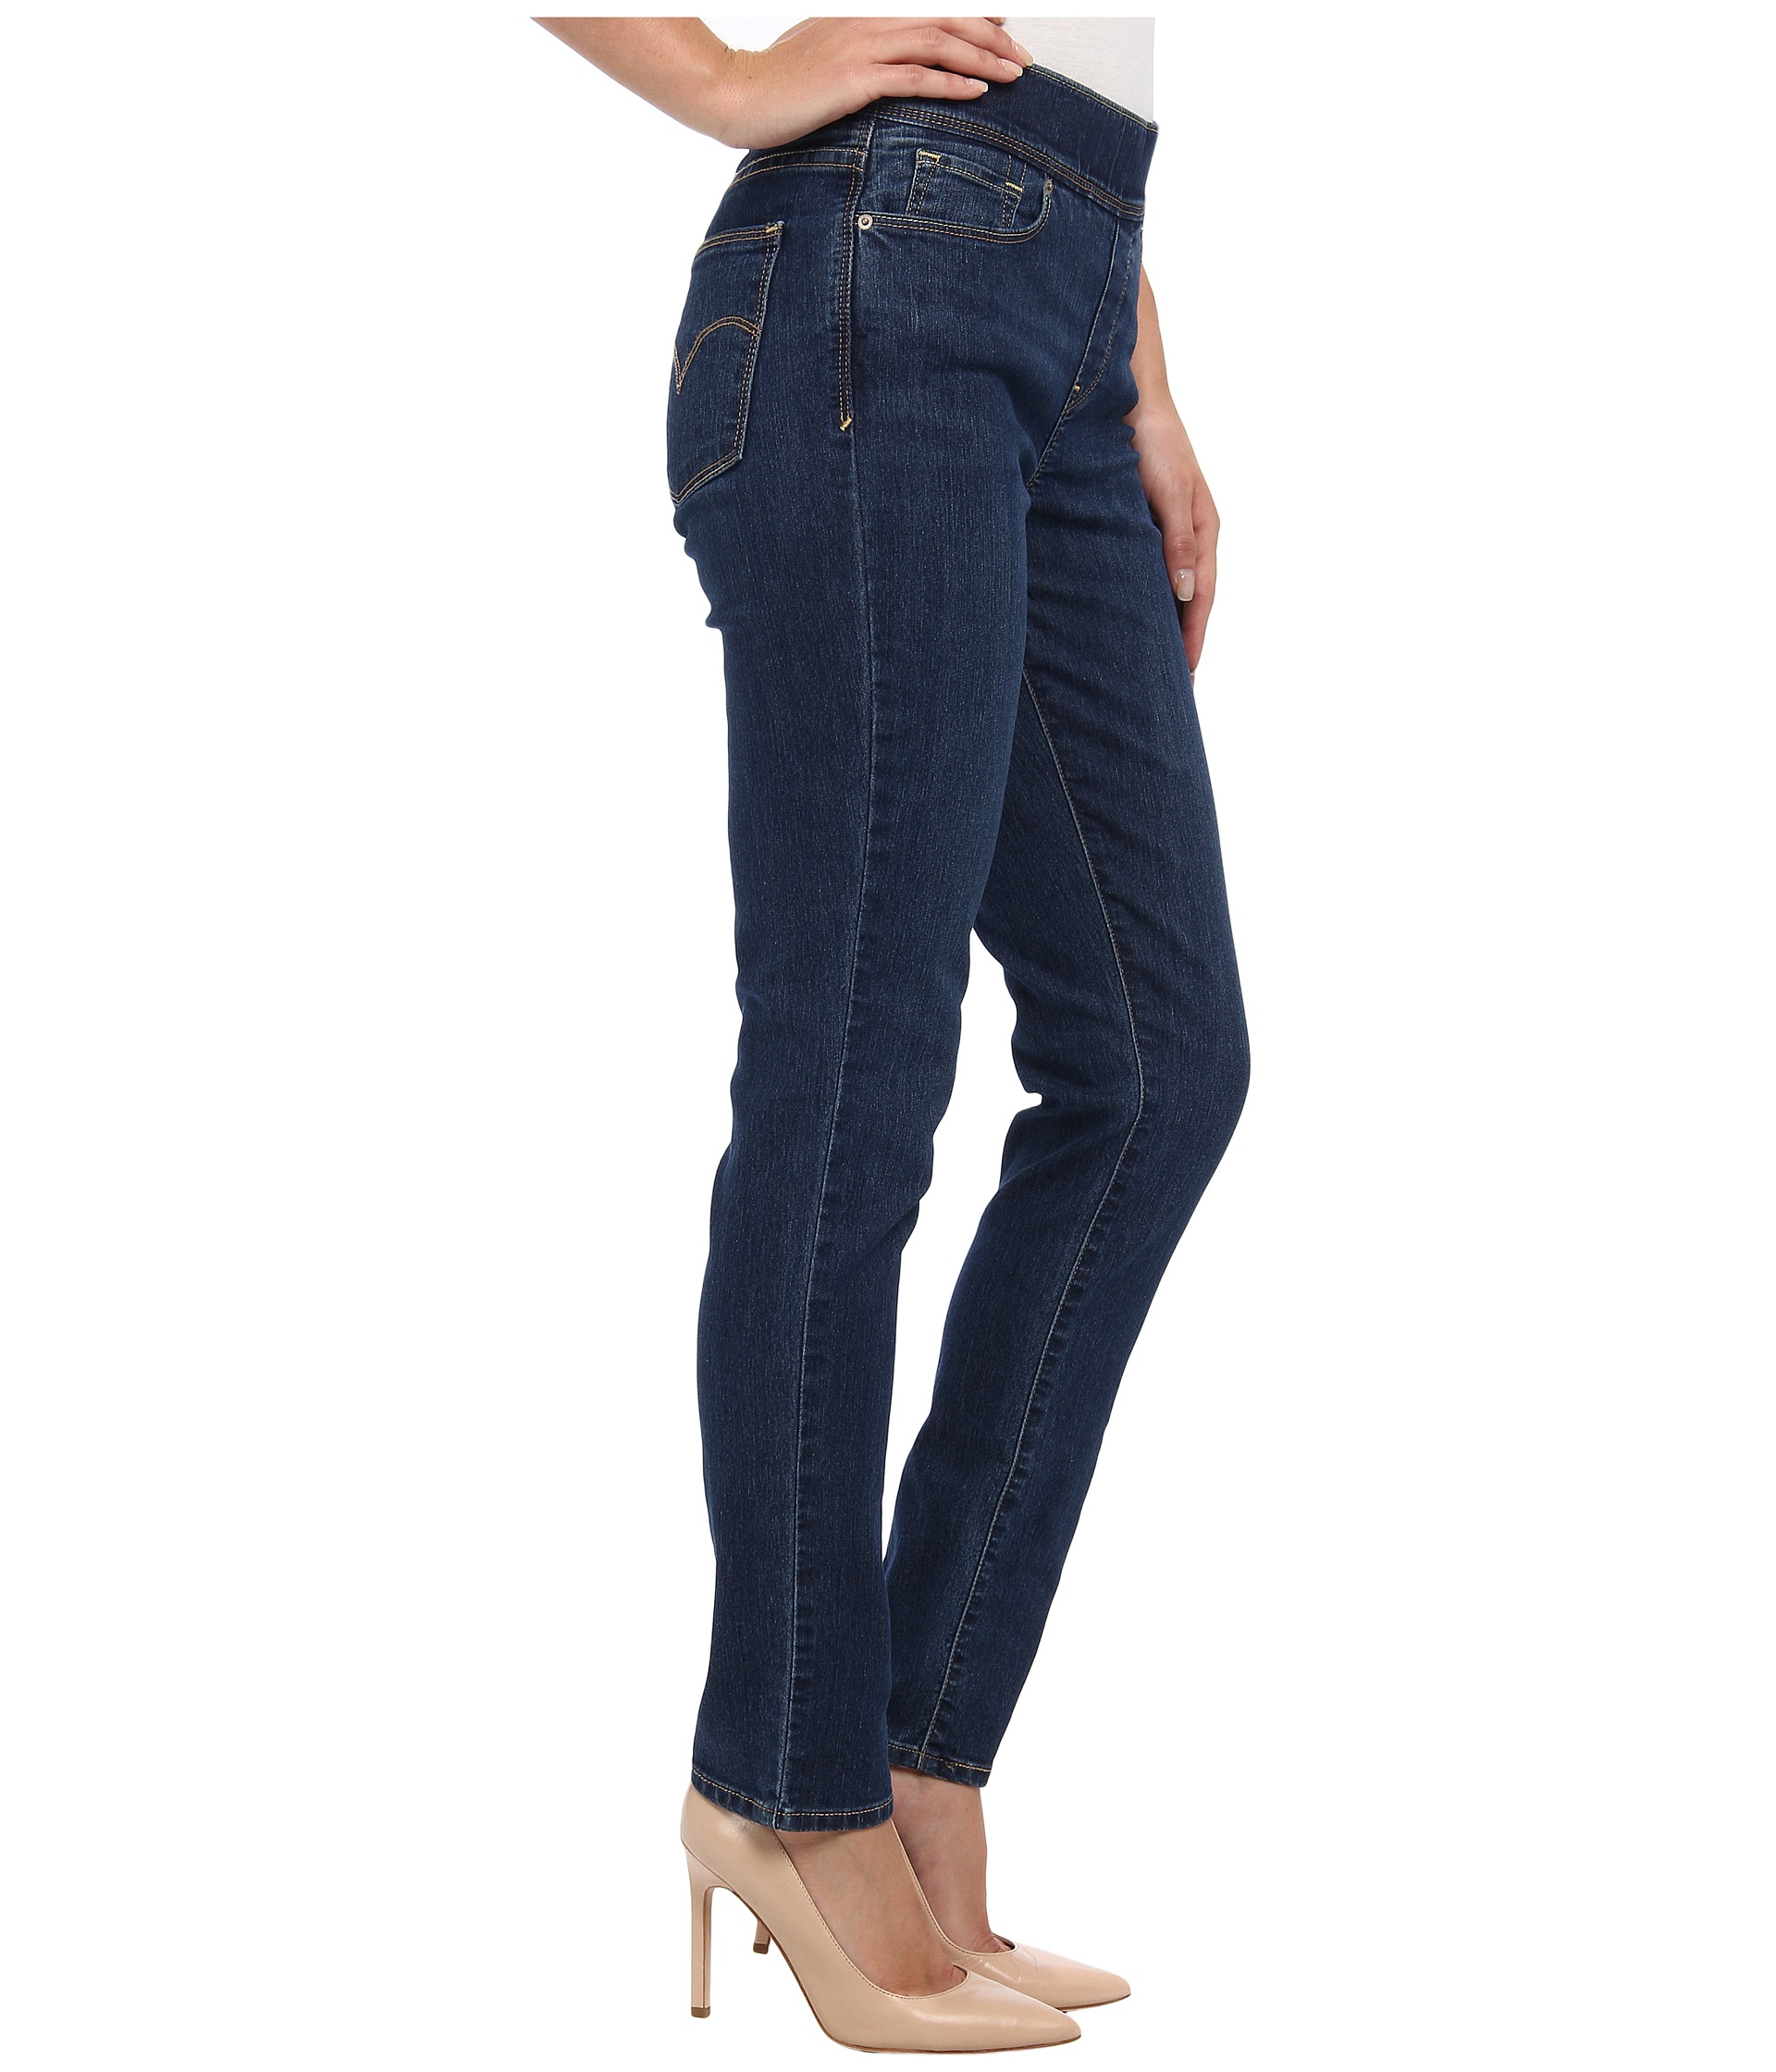 Levi's® Womens Perfectly Slimming Pull On Skinny at Zappos.com